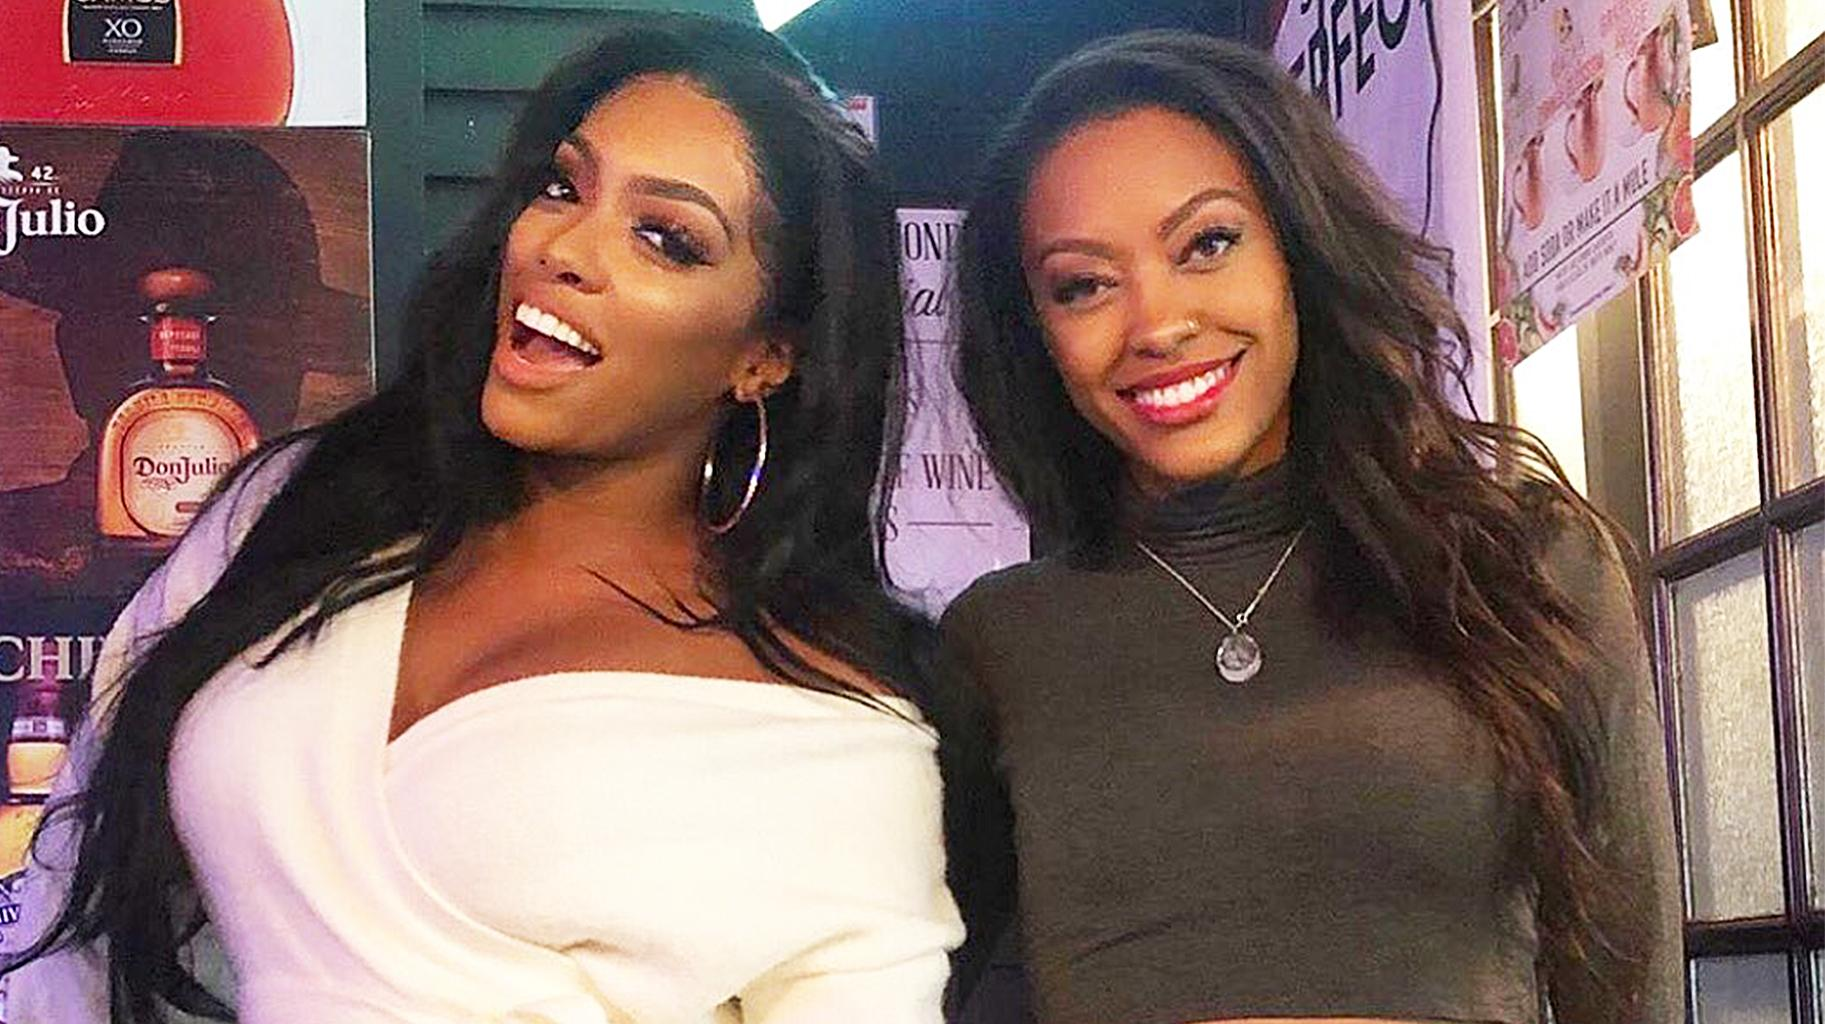 Porsha Williams Makes Fans' Jaws Drop With These Gorgeous Photos Featuring Her Sister, Lauren Williams